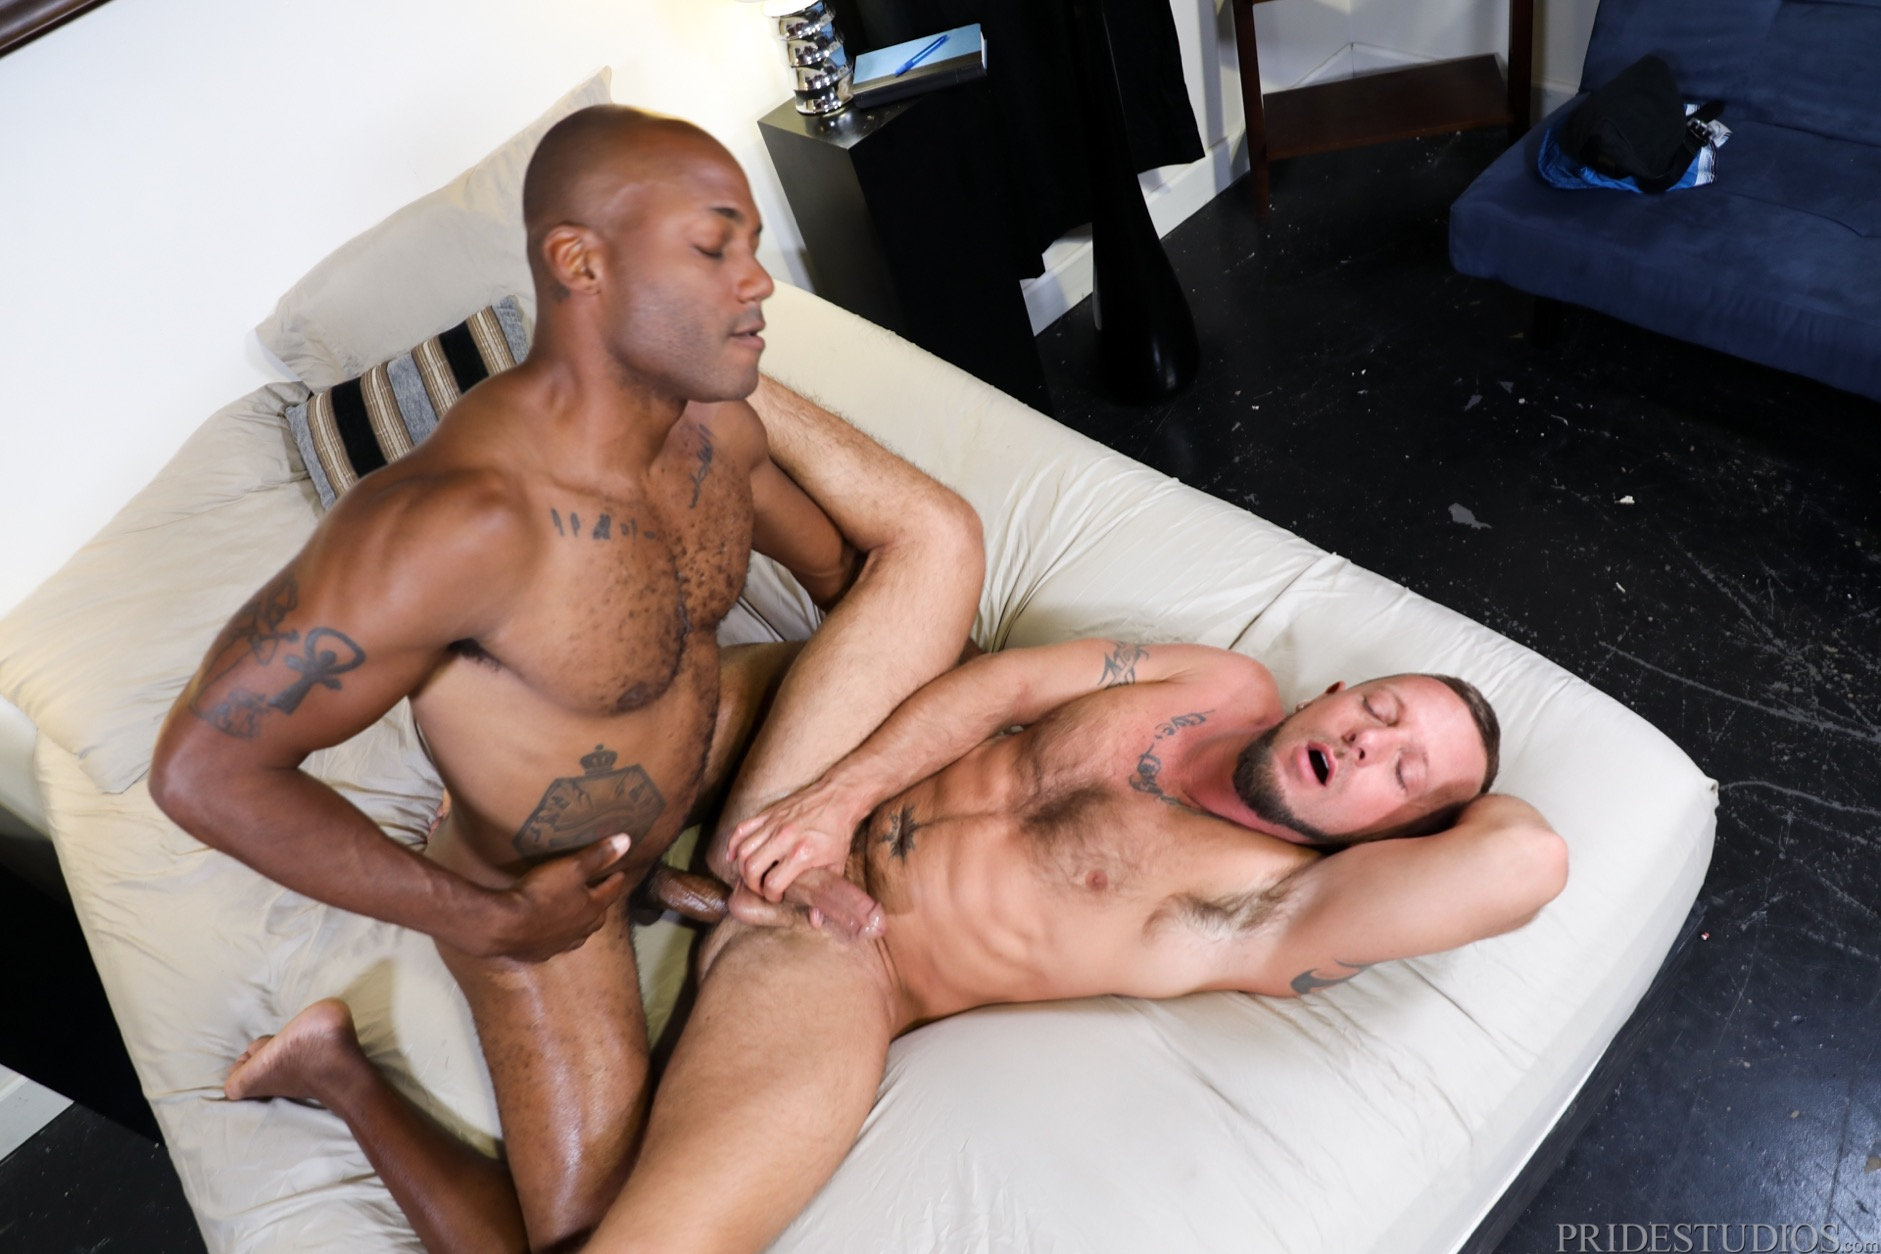 Interracial Sex at Pride Studios